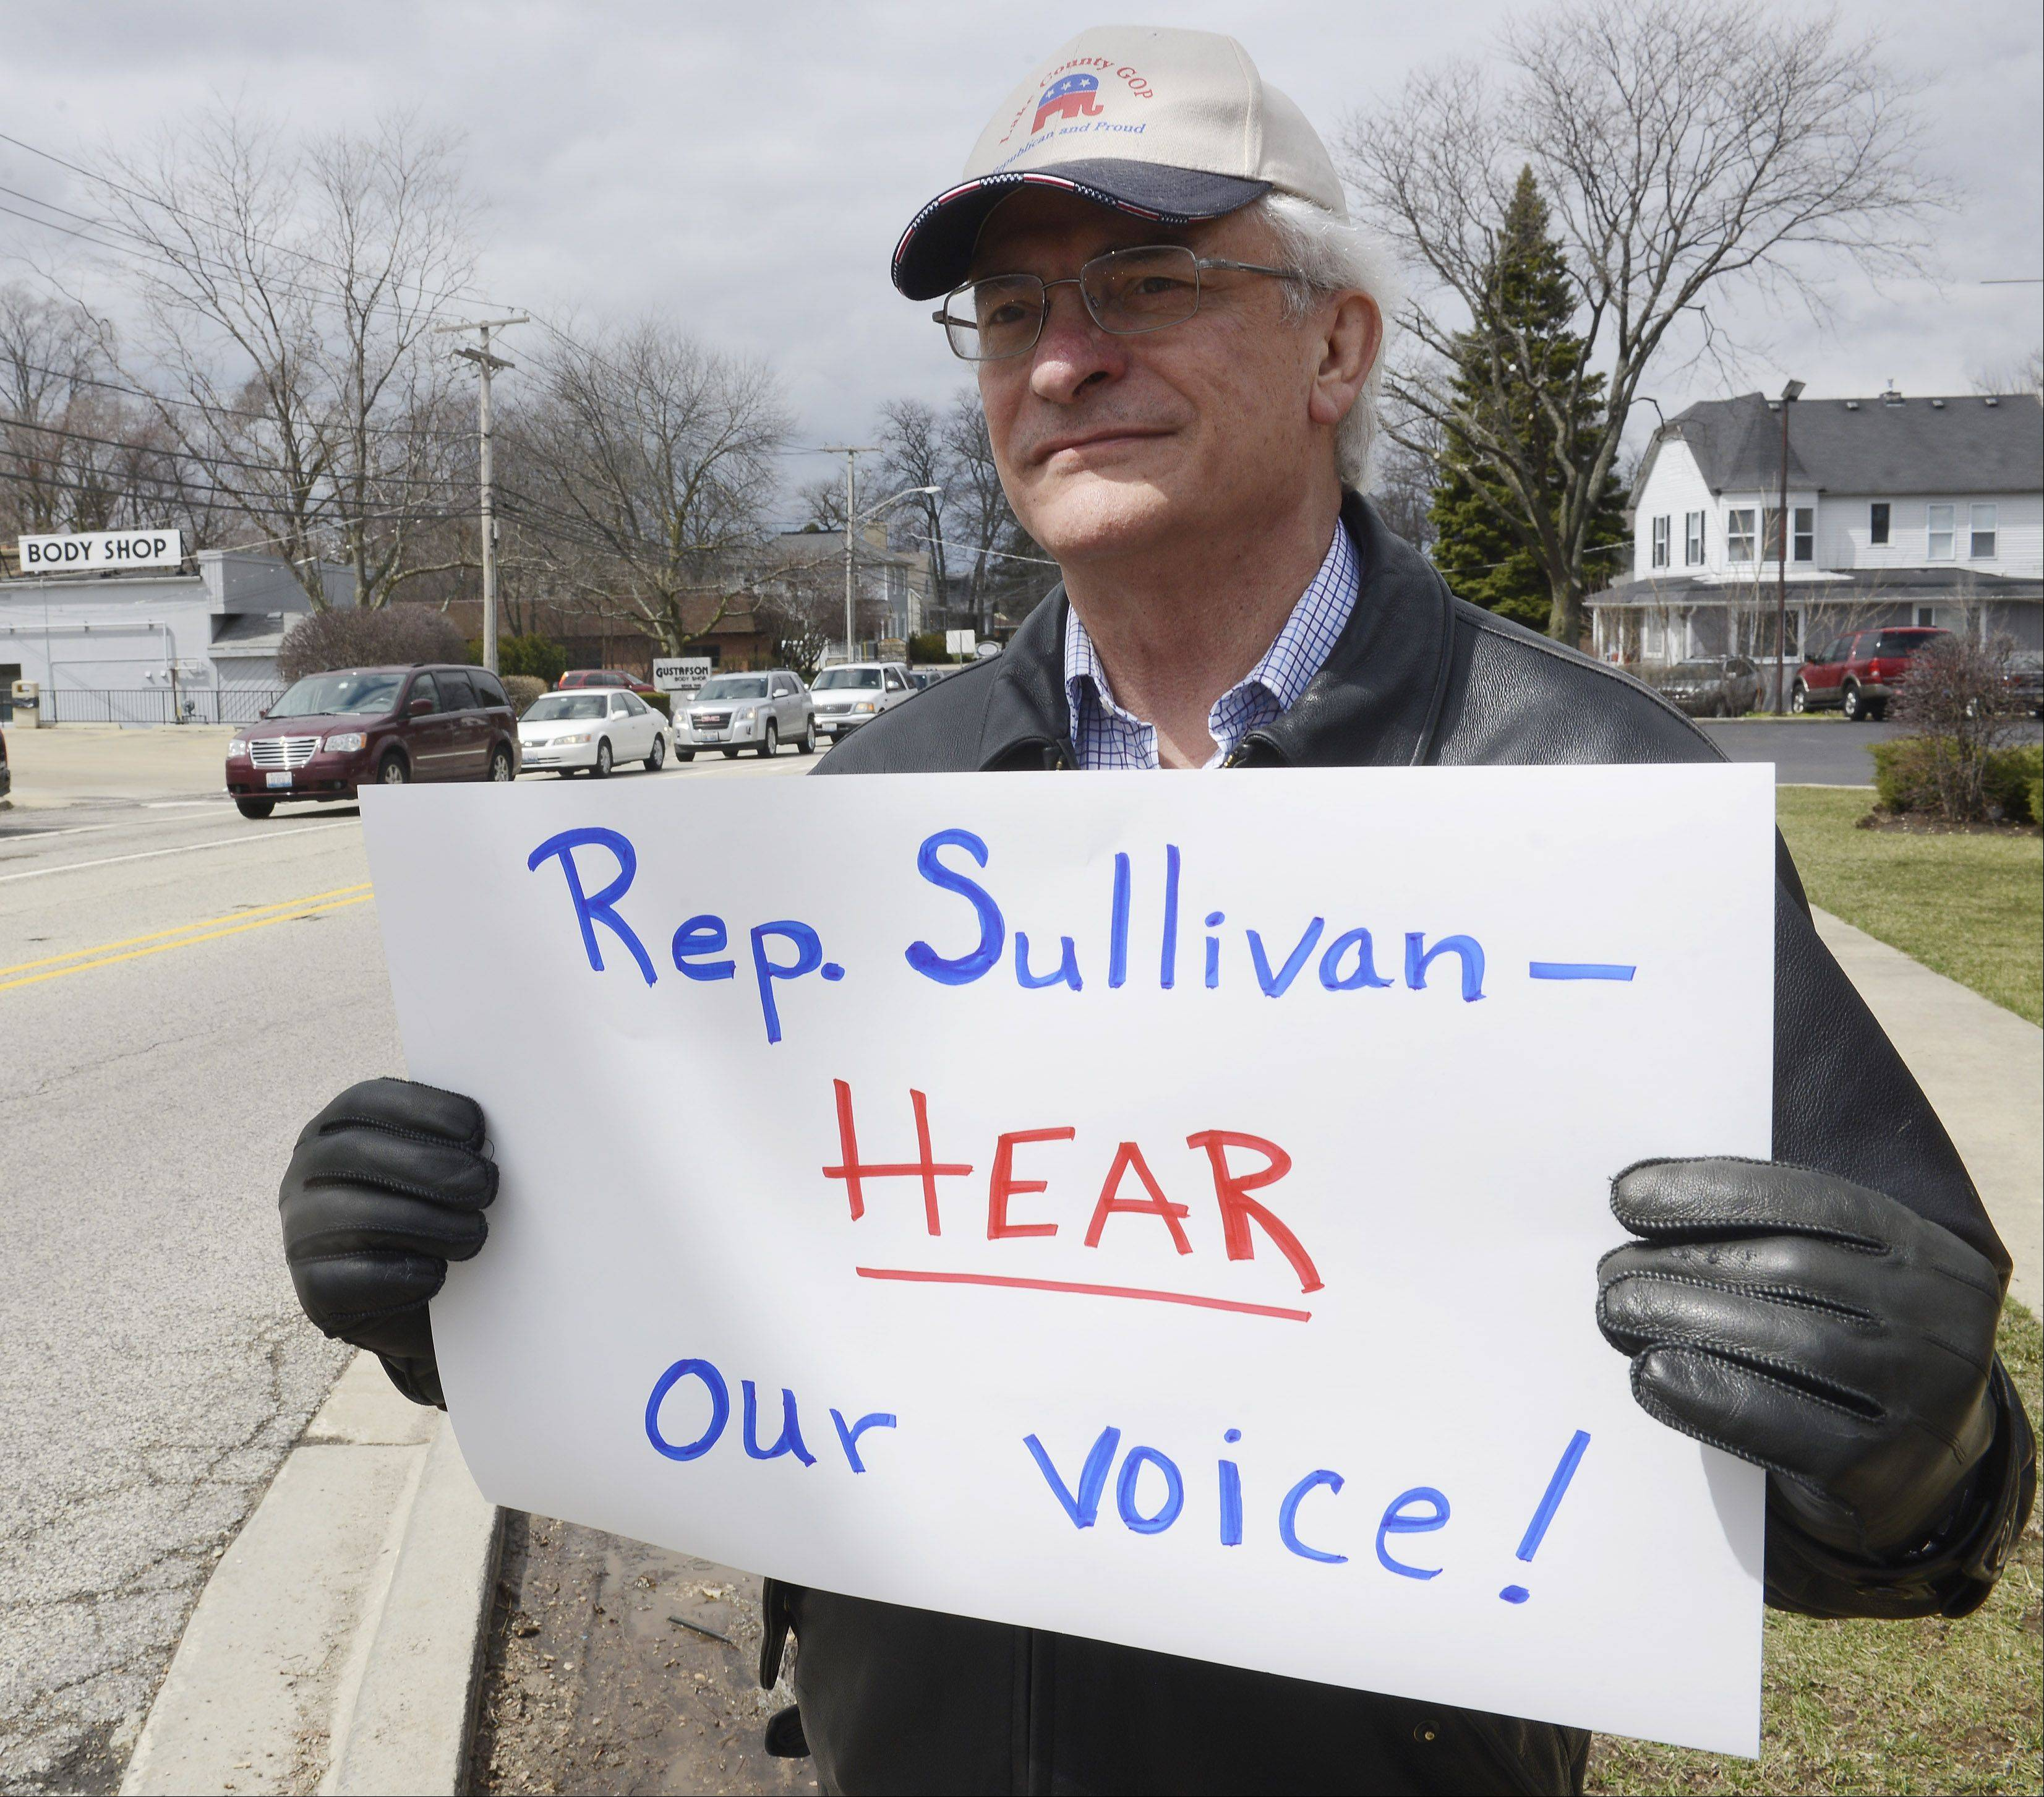 Don Castella of Lincolnshire holds his sign as opponents of gay marriage protest Saturday outside state Rep. Ed Sullivan Jr.'s office in Mundelein.